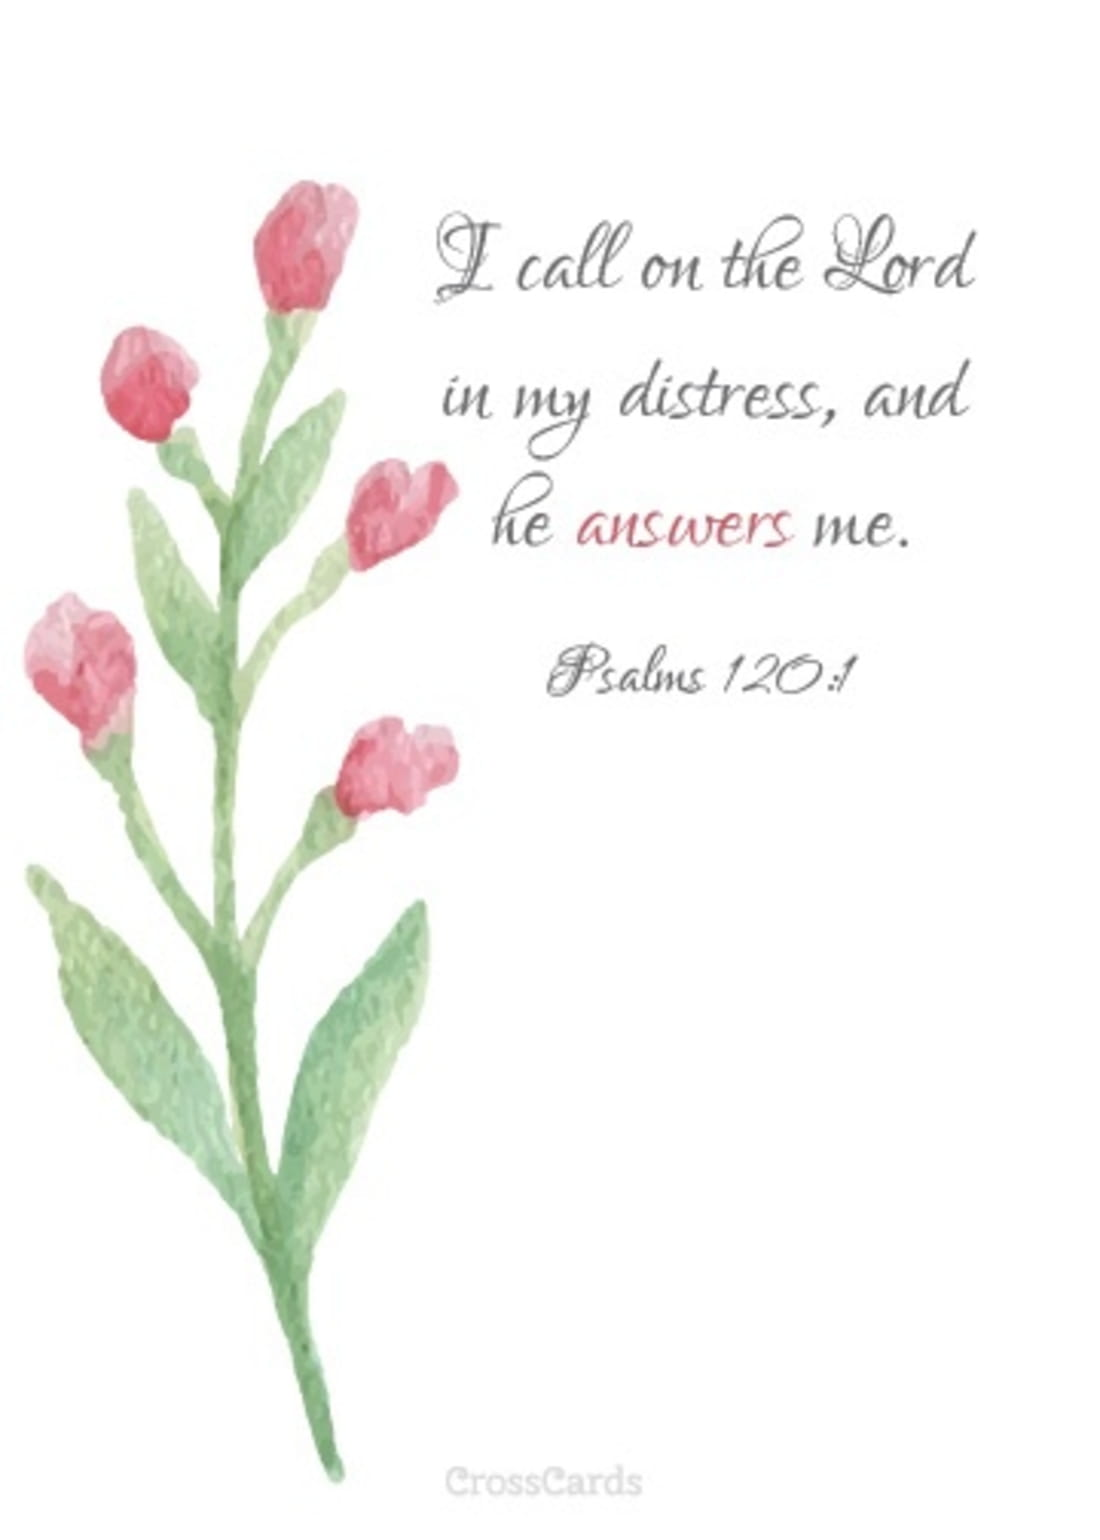 I Call on the Lord in My Distress and He Answers Me